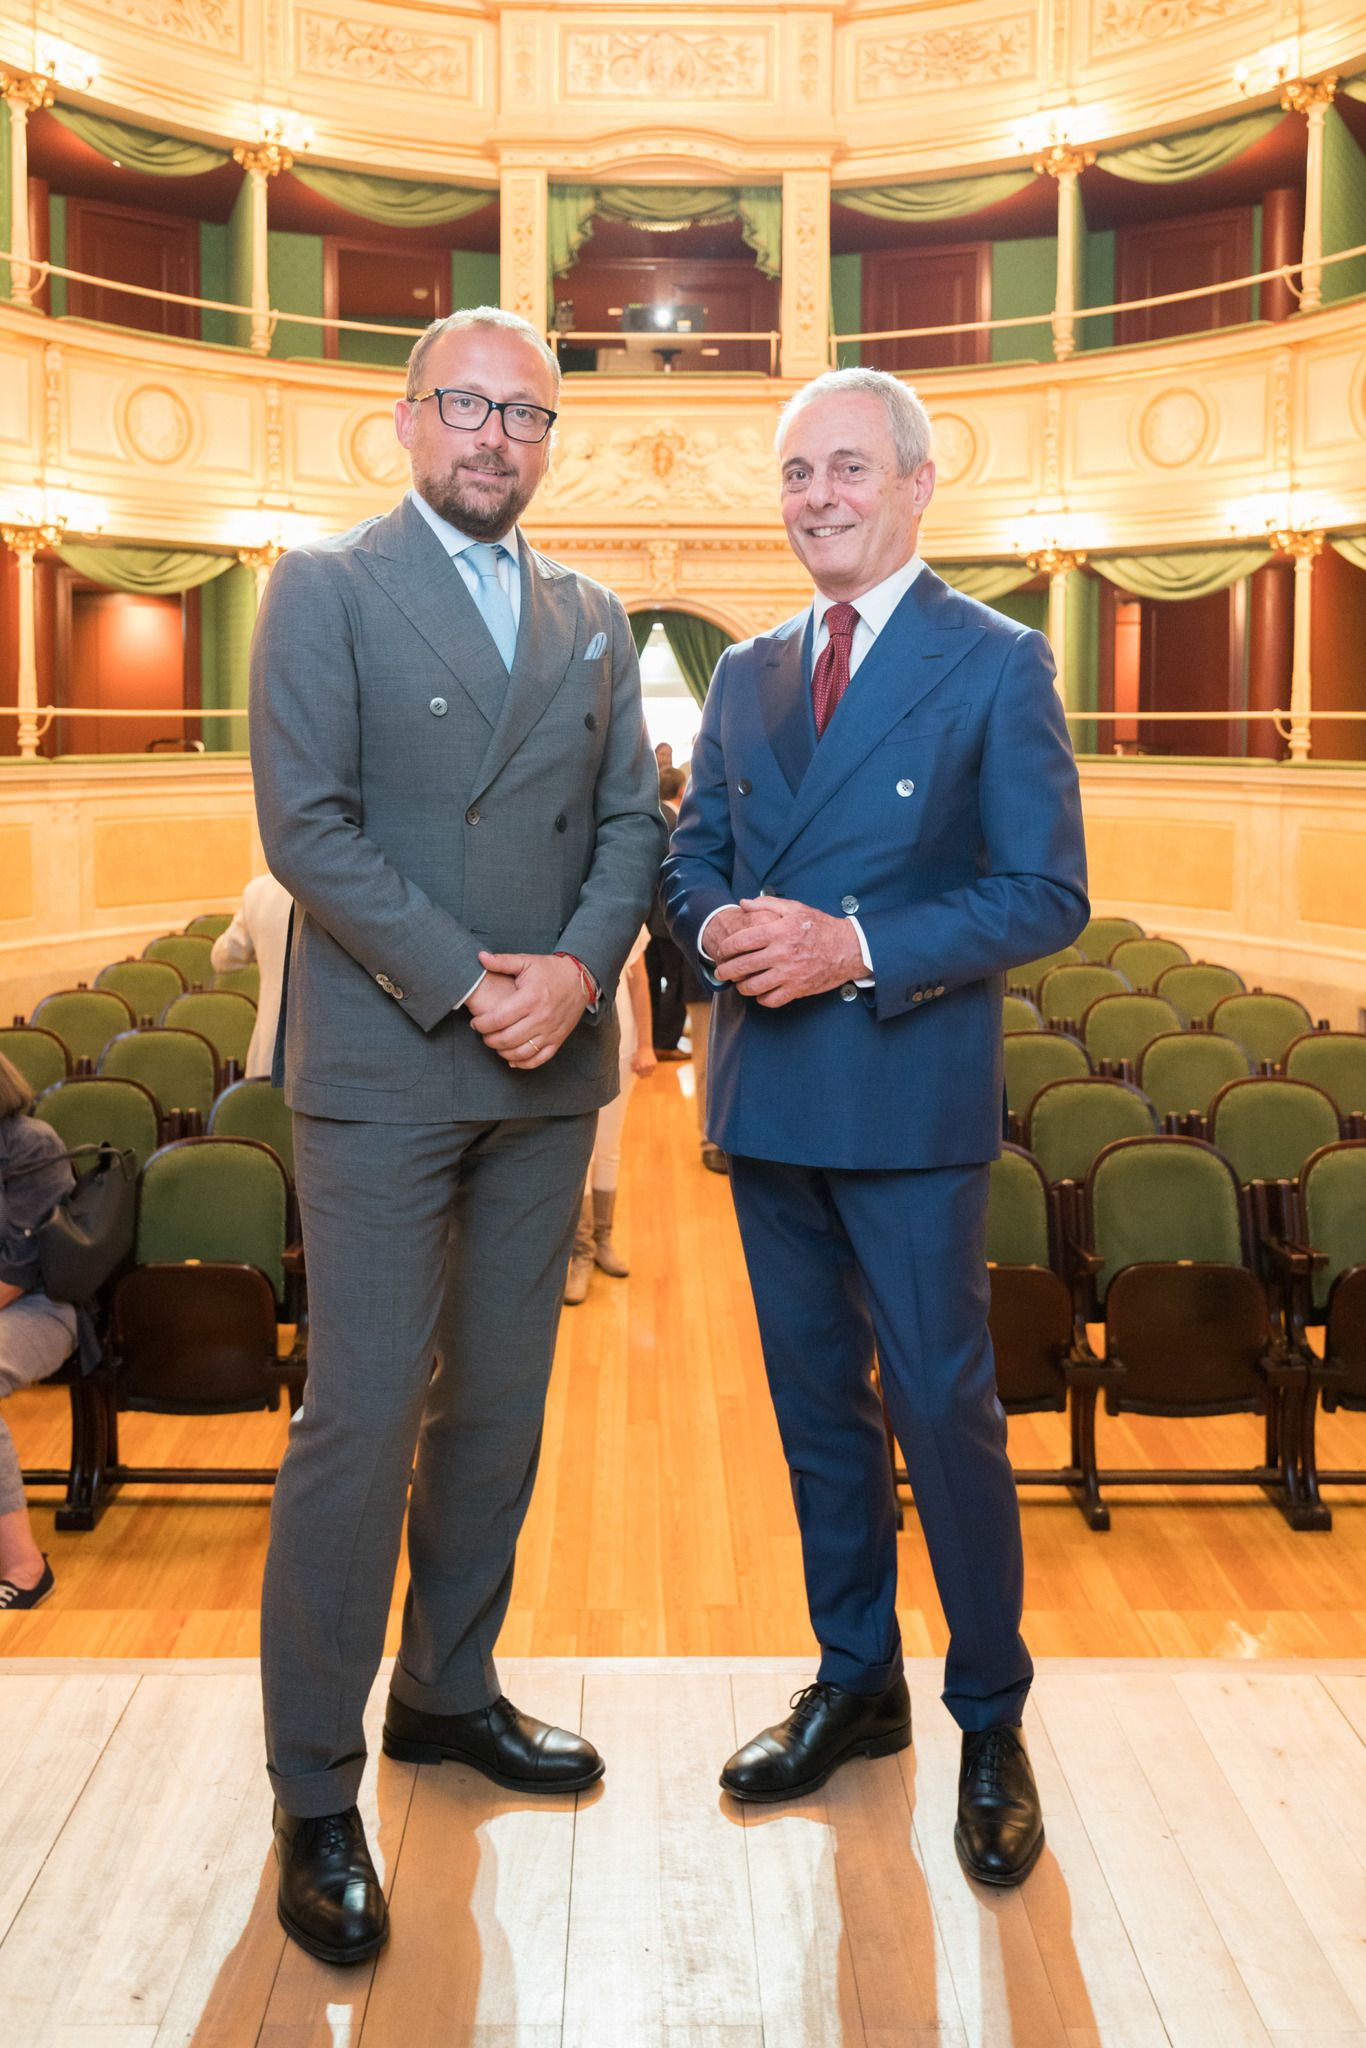 Botto Poala, president, and Massimo Mosiello, director Milano Unica